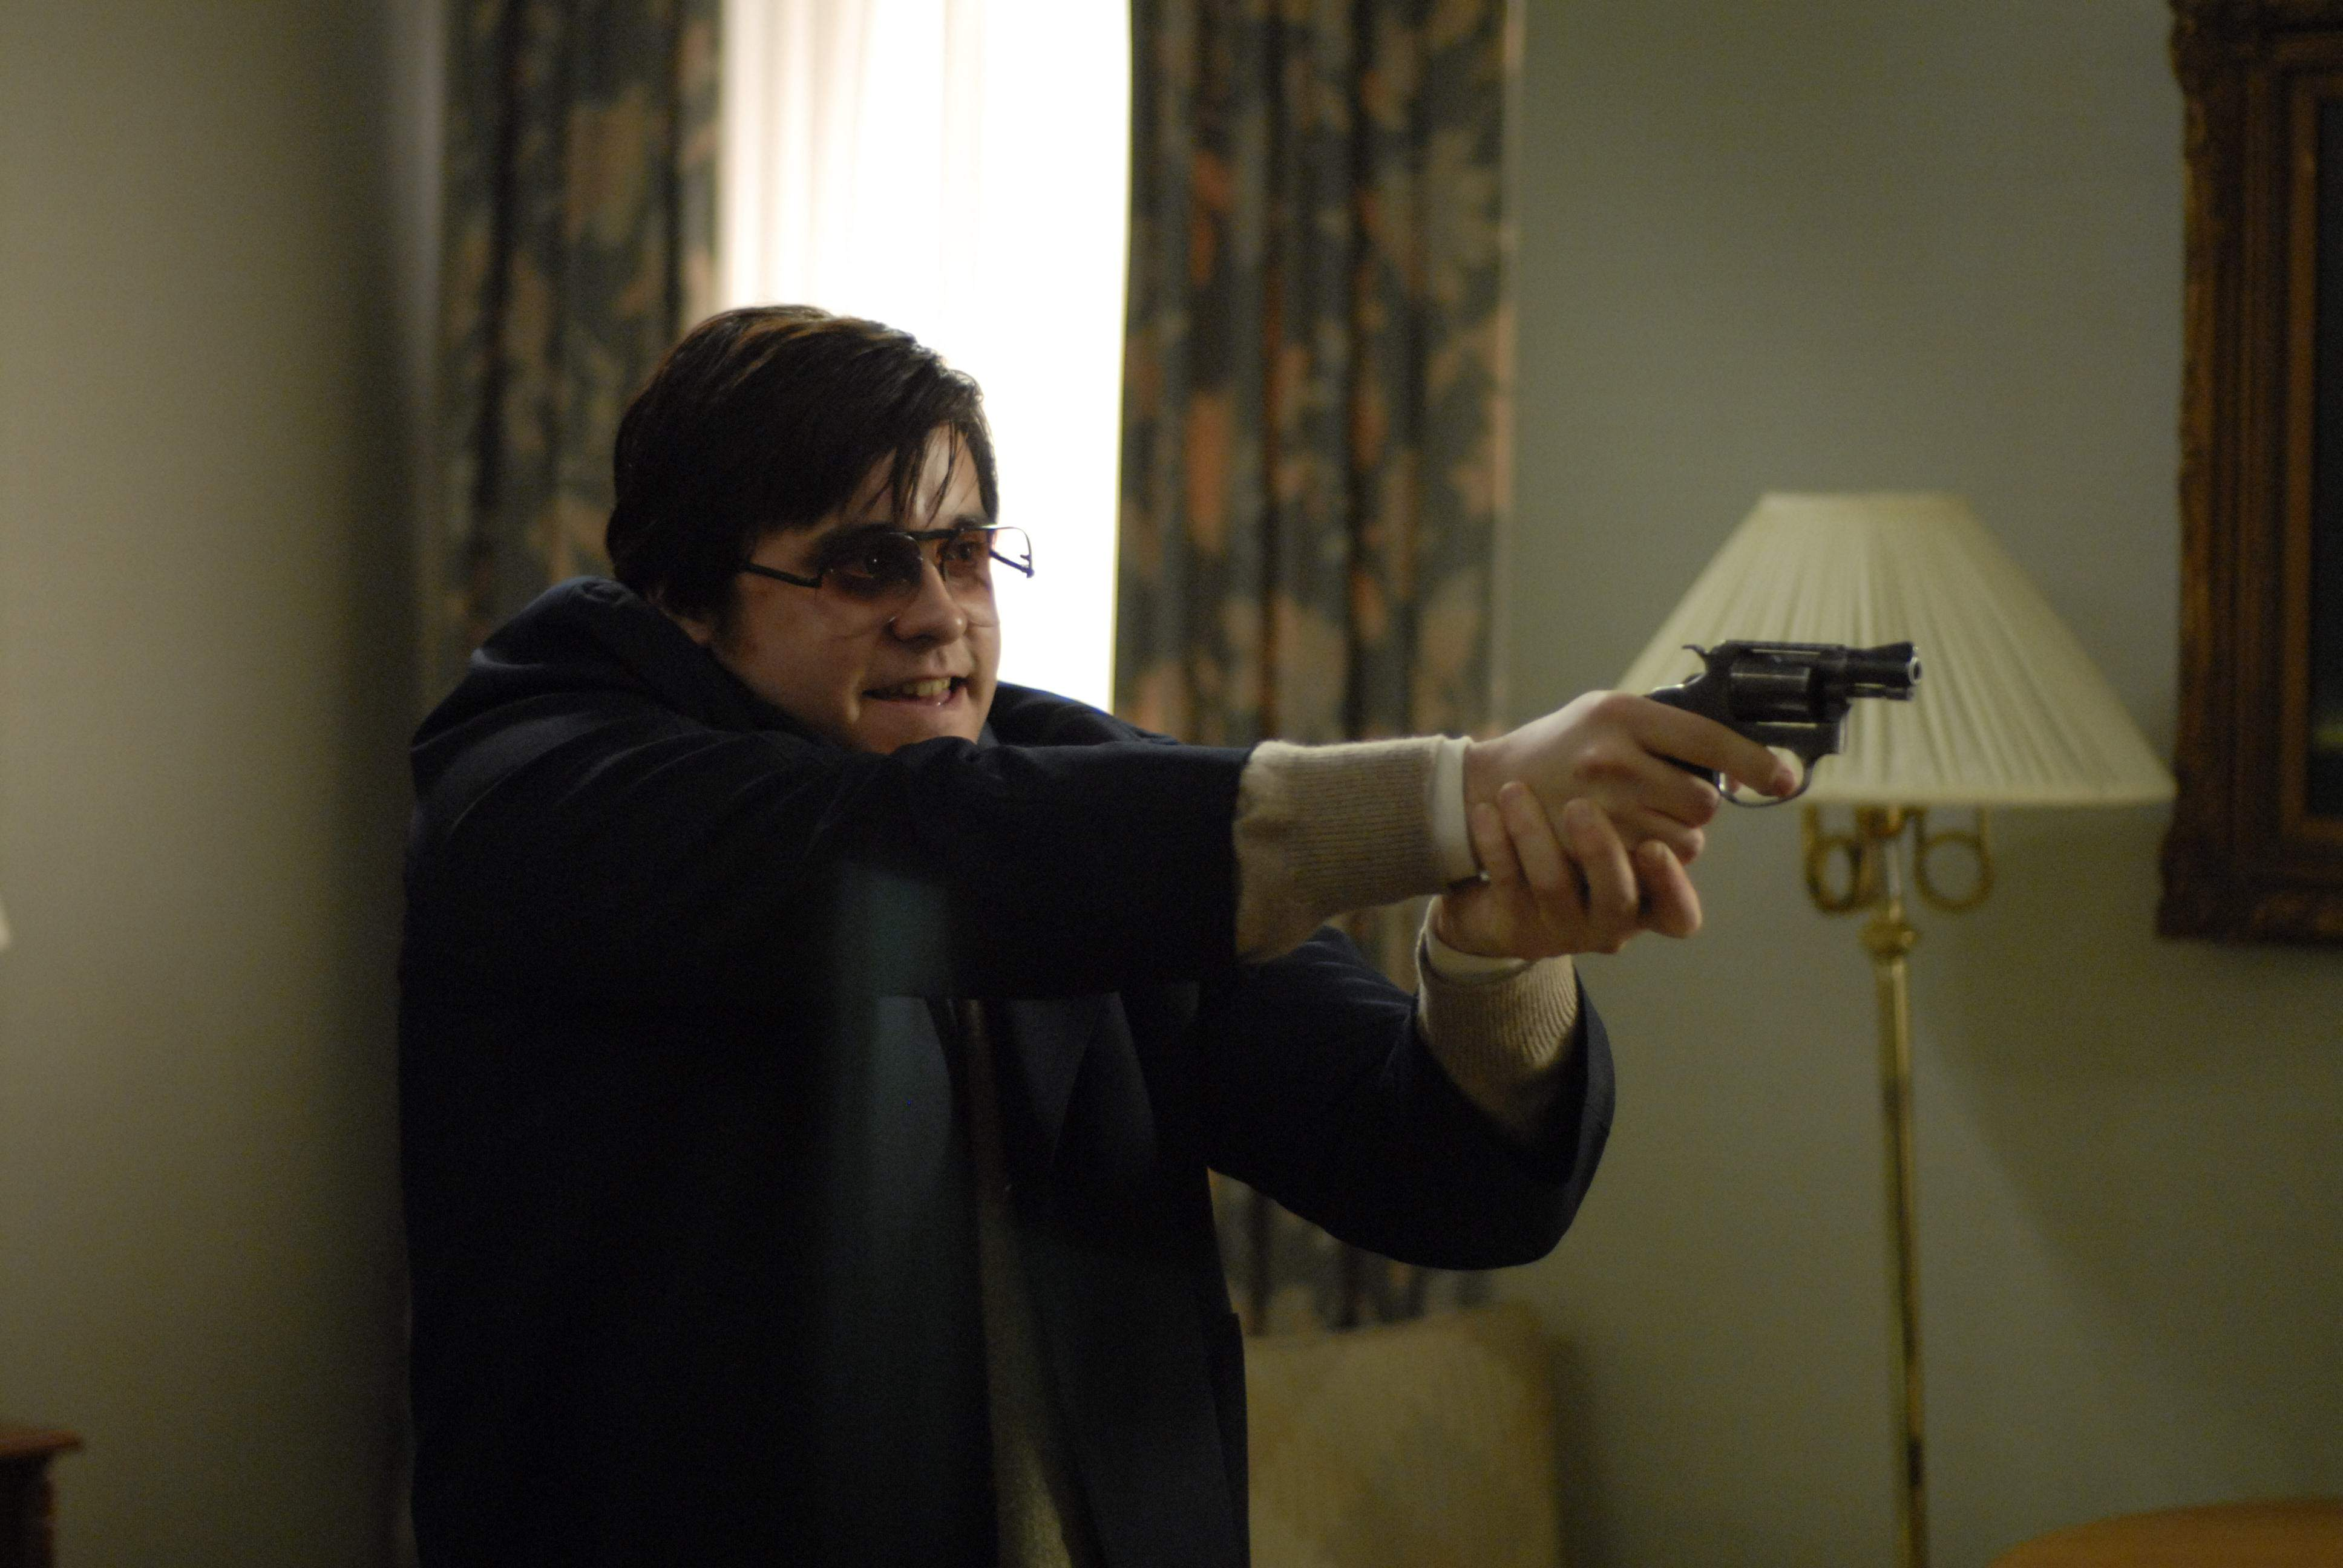 Jared Leto as Mark David Chapman in Peace Arch Entertainment's Chapter 27 (2008)